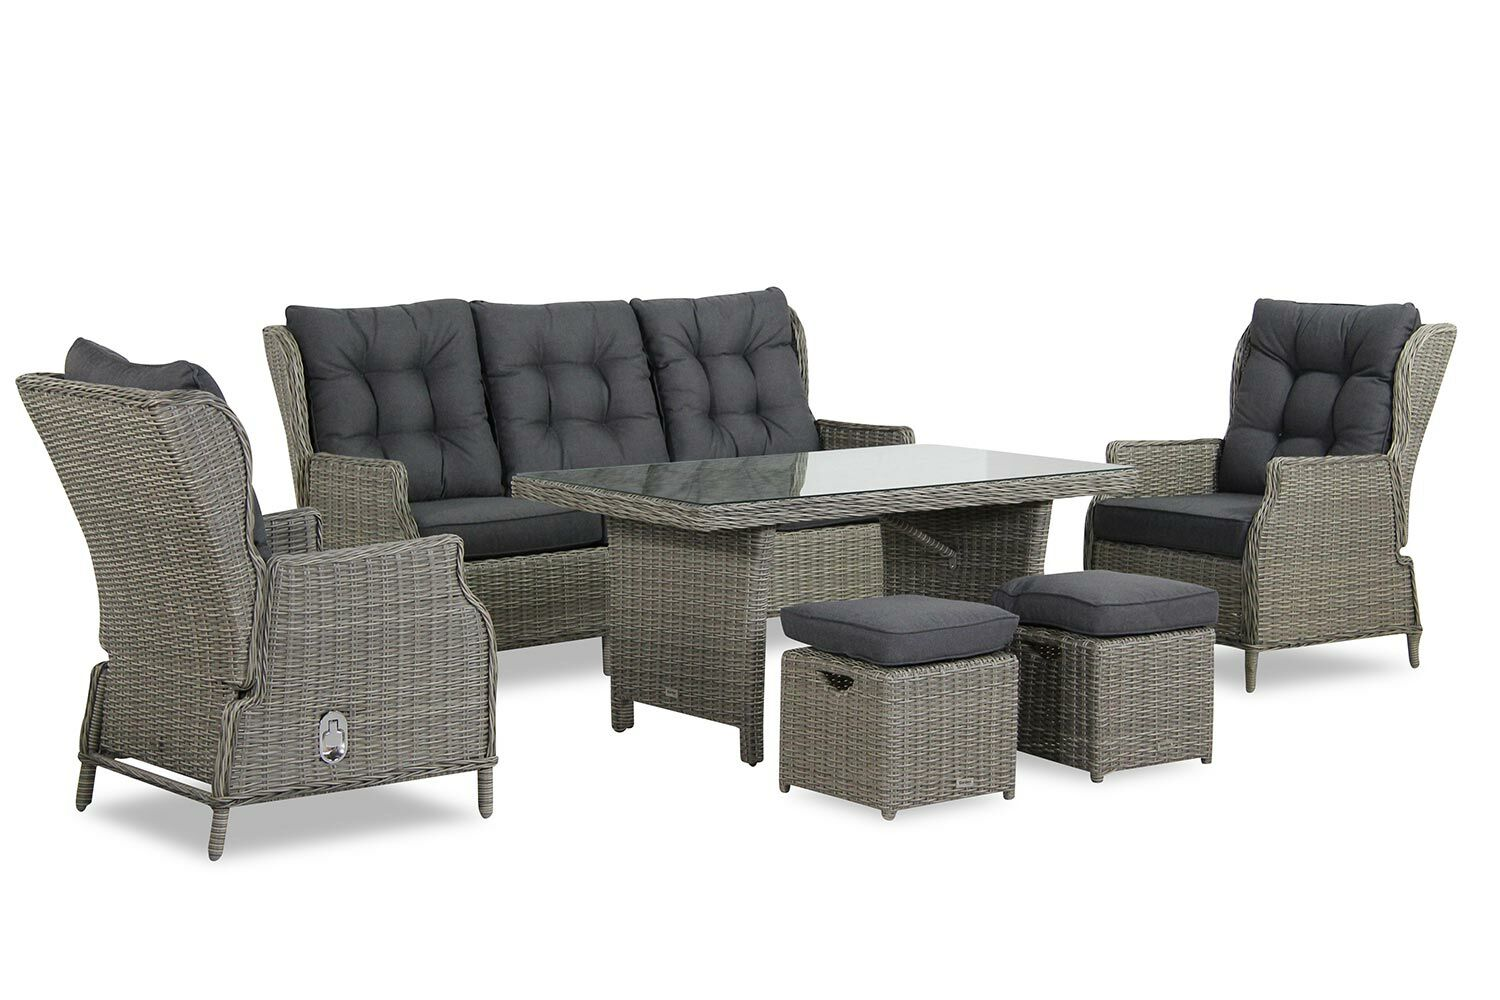 Garden collections new castle dining loungeset 6 delig